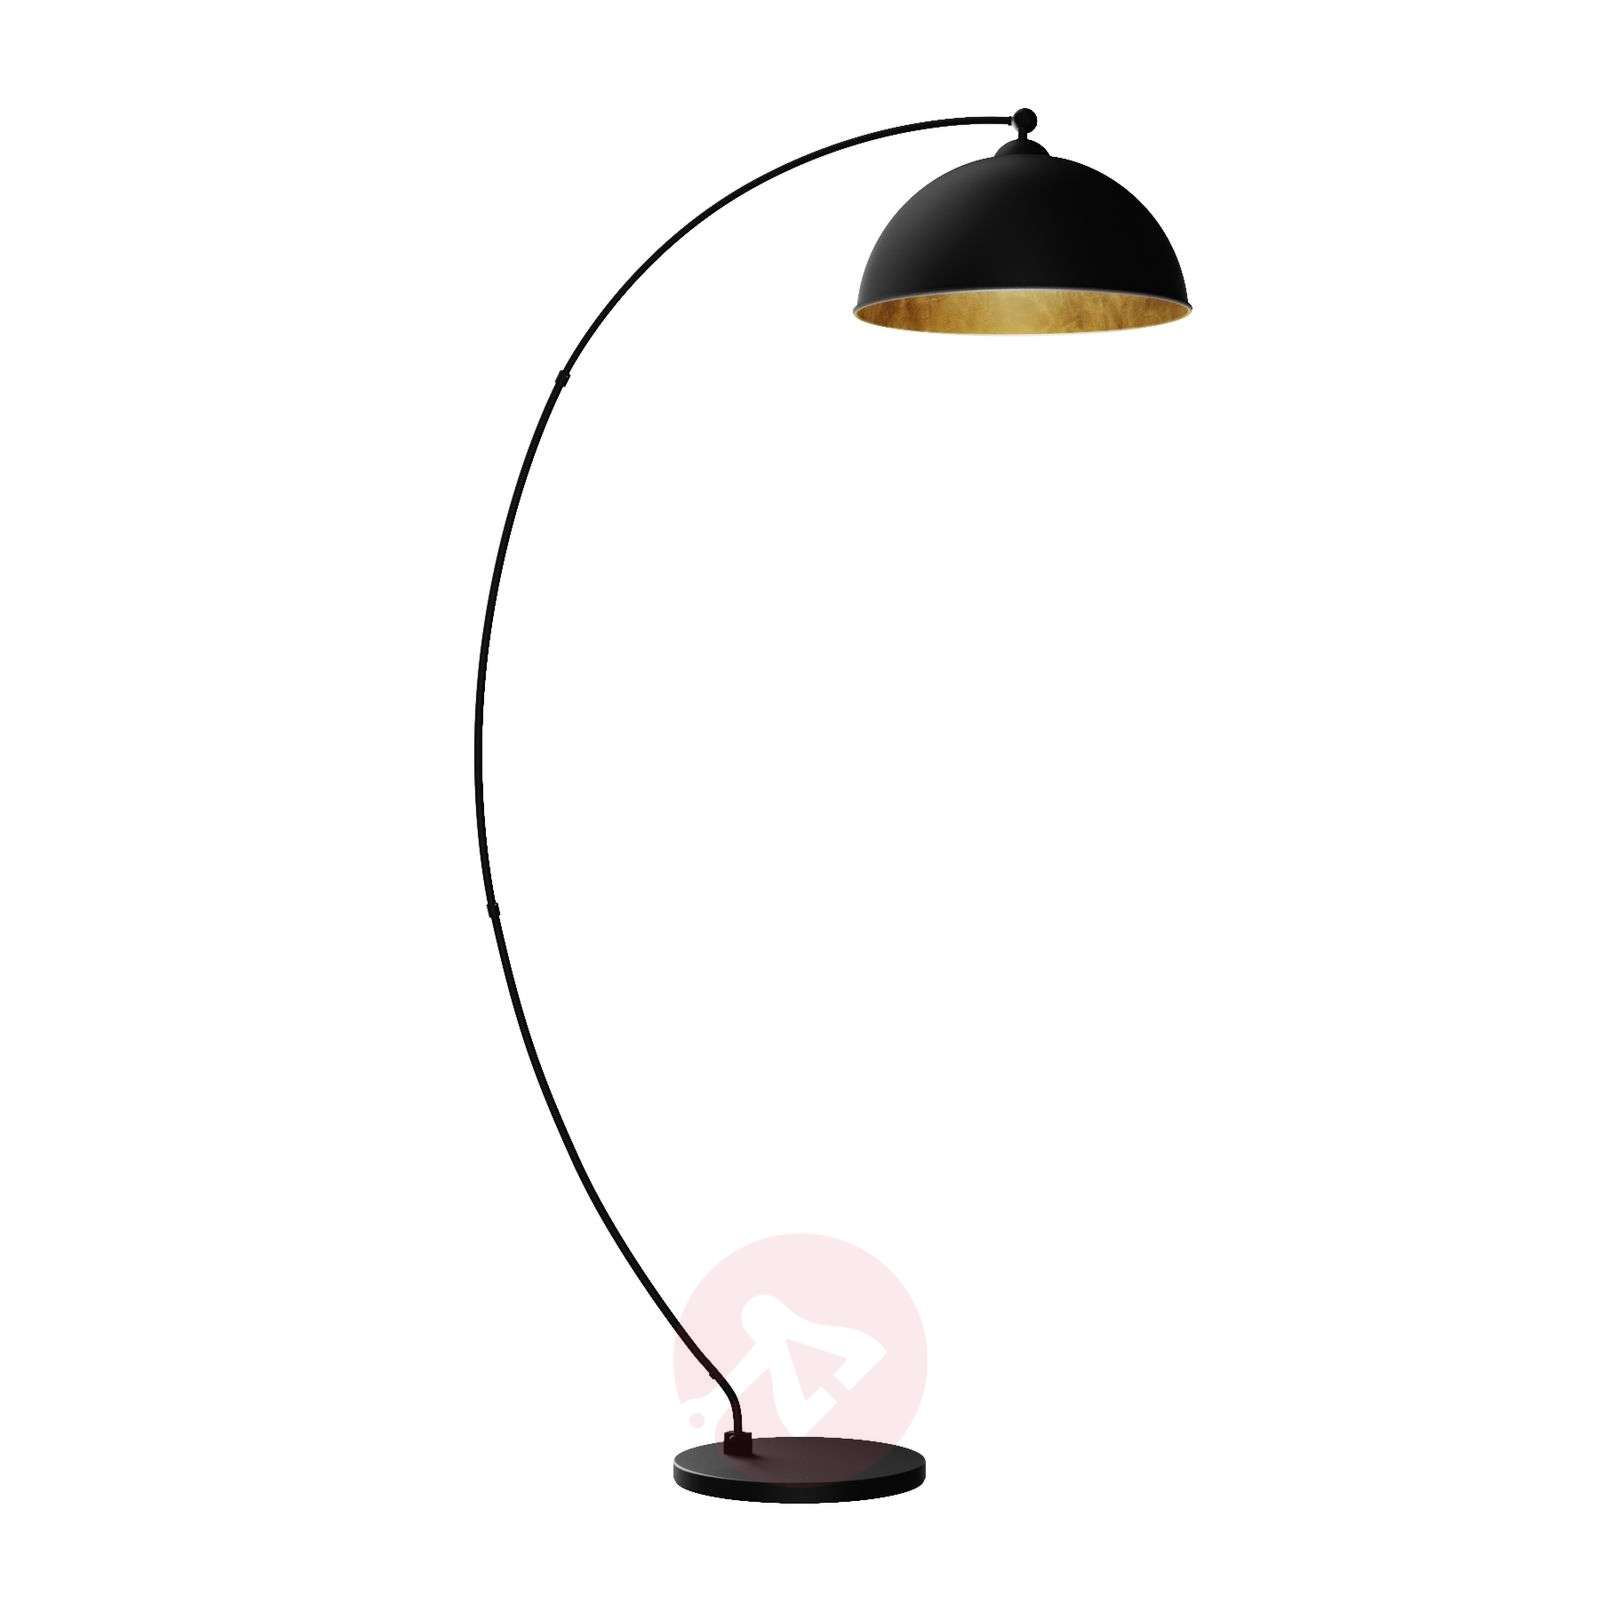 Curved floor lamp Jonera, black and gold-9621154-02